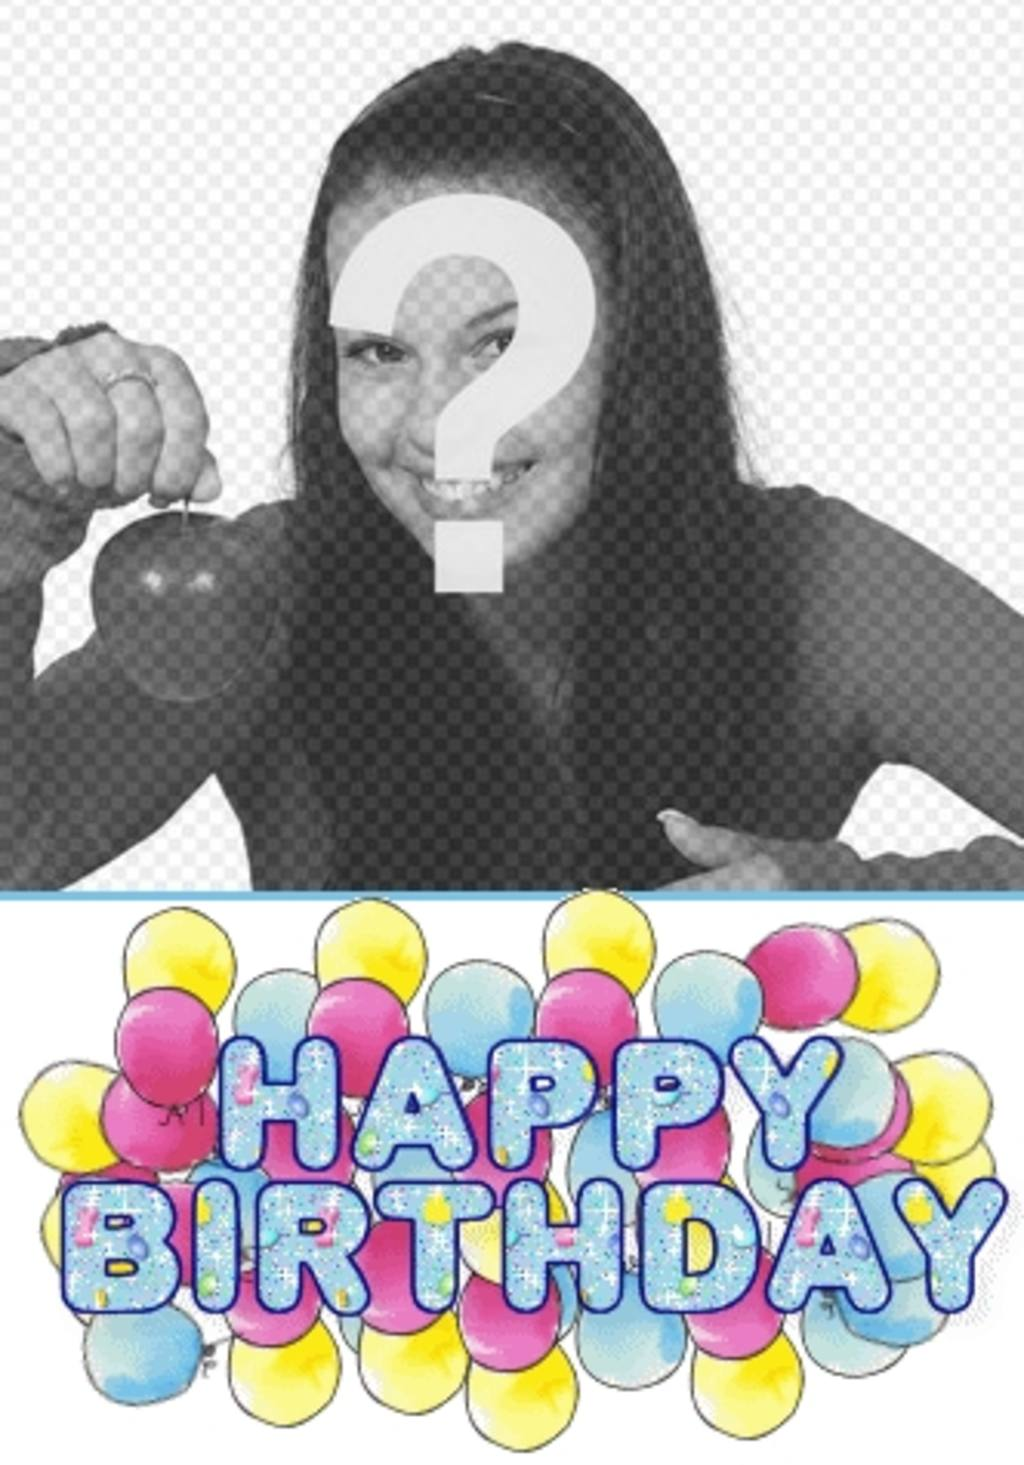 Personalized Birthday Card With Photo An Animated Text Quothappy Birthdayquot